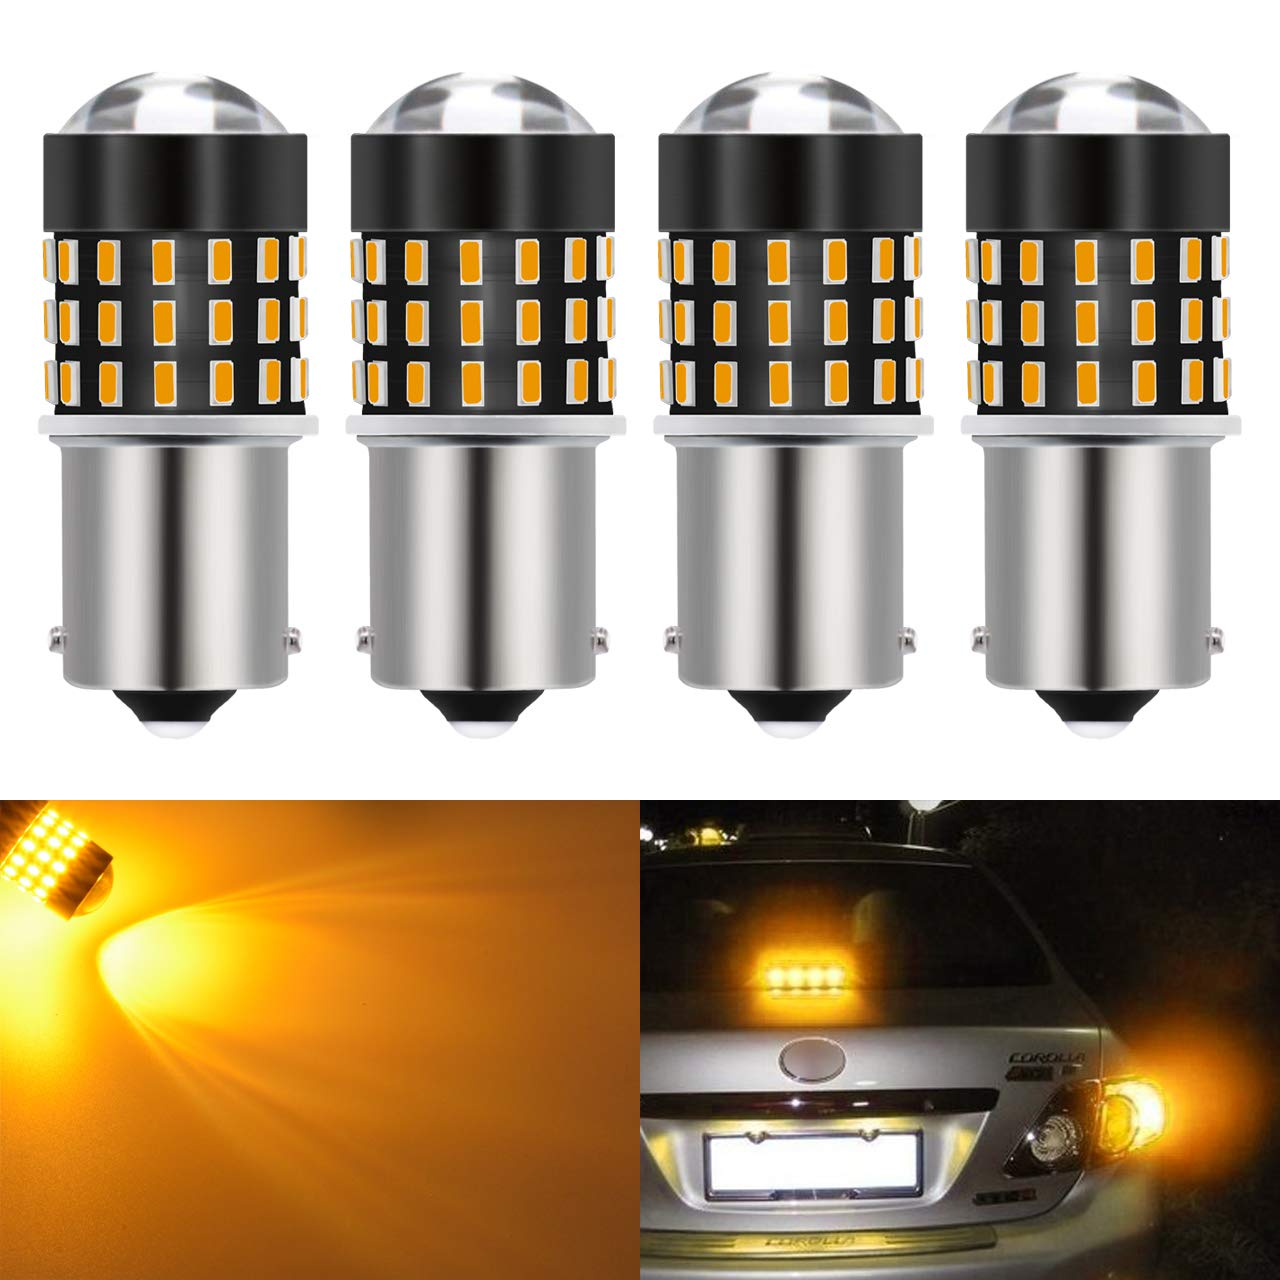 KaTur 4pcs Super Bright 1156 BA15S 7506 1073 1095 1141 3014 54SMD Lens LED Replacement Bulbs Turn Brake Signal Tail Back Up Stop Parking RV Lights 3.1W DC 12V-24V Amber 1156/P21W/BA15S